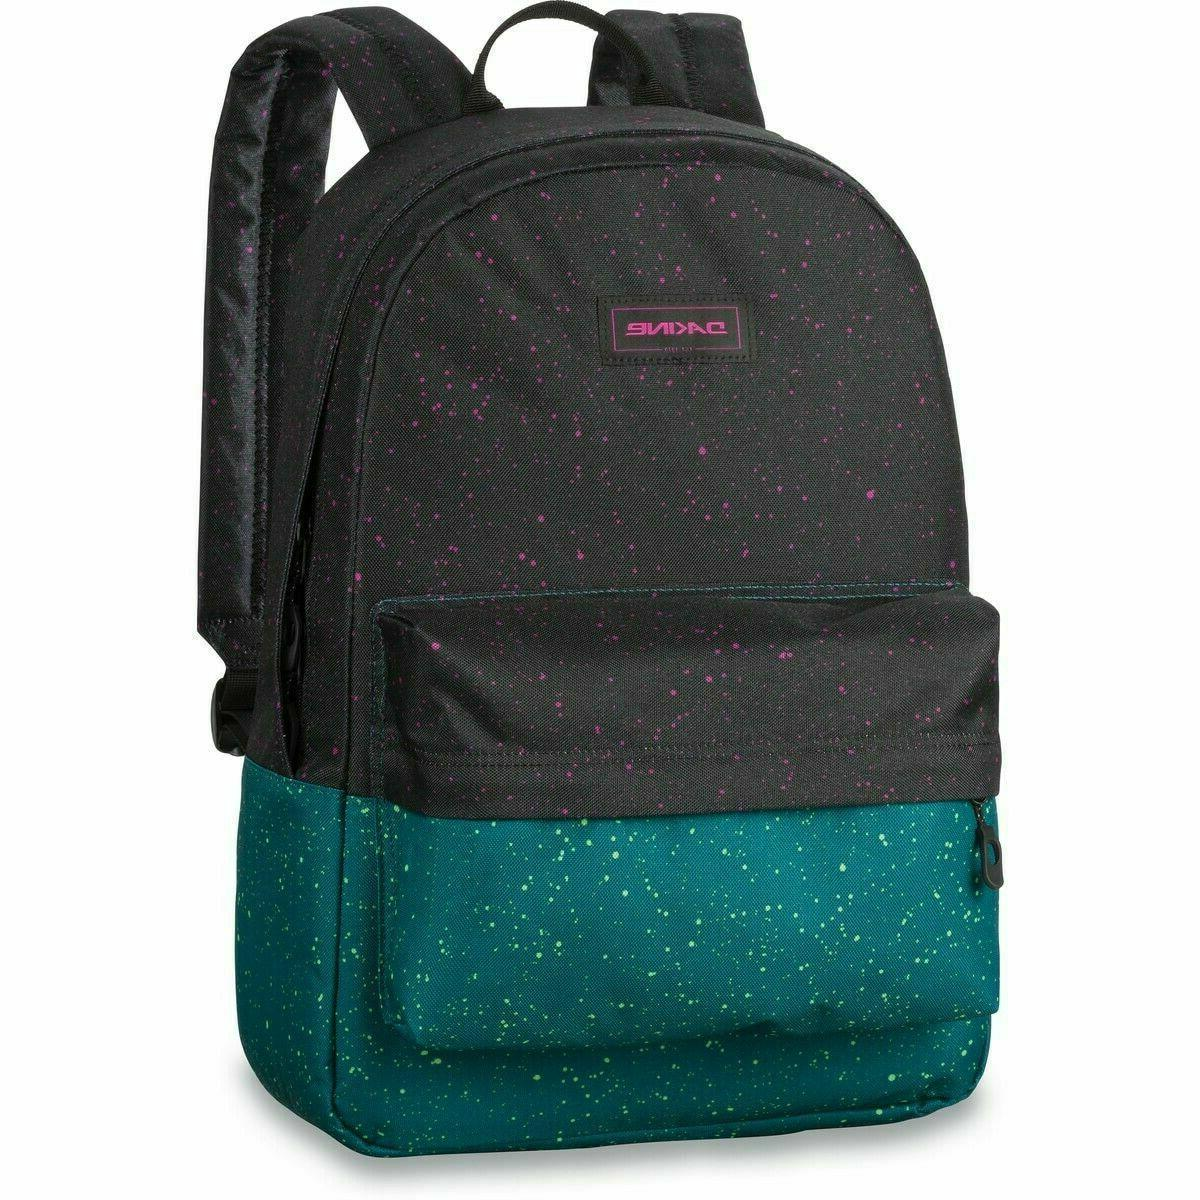 new 365 21l backpack with 15 laptop